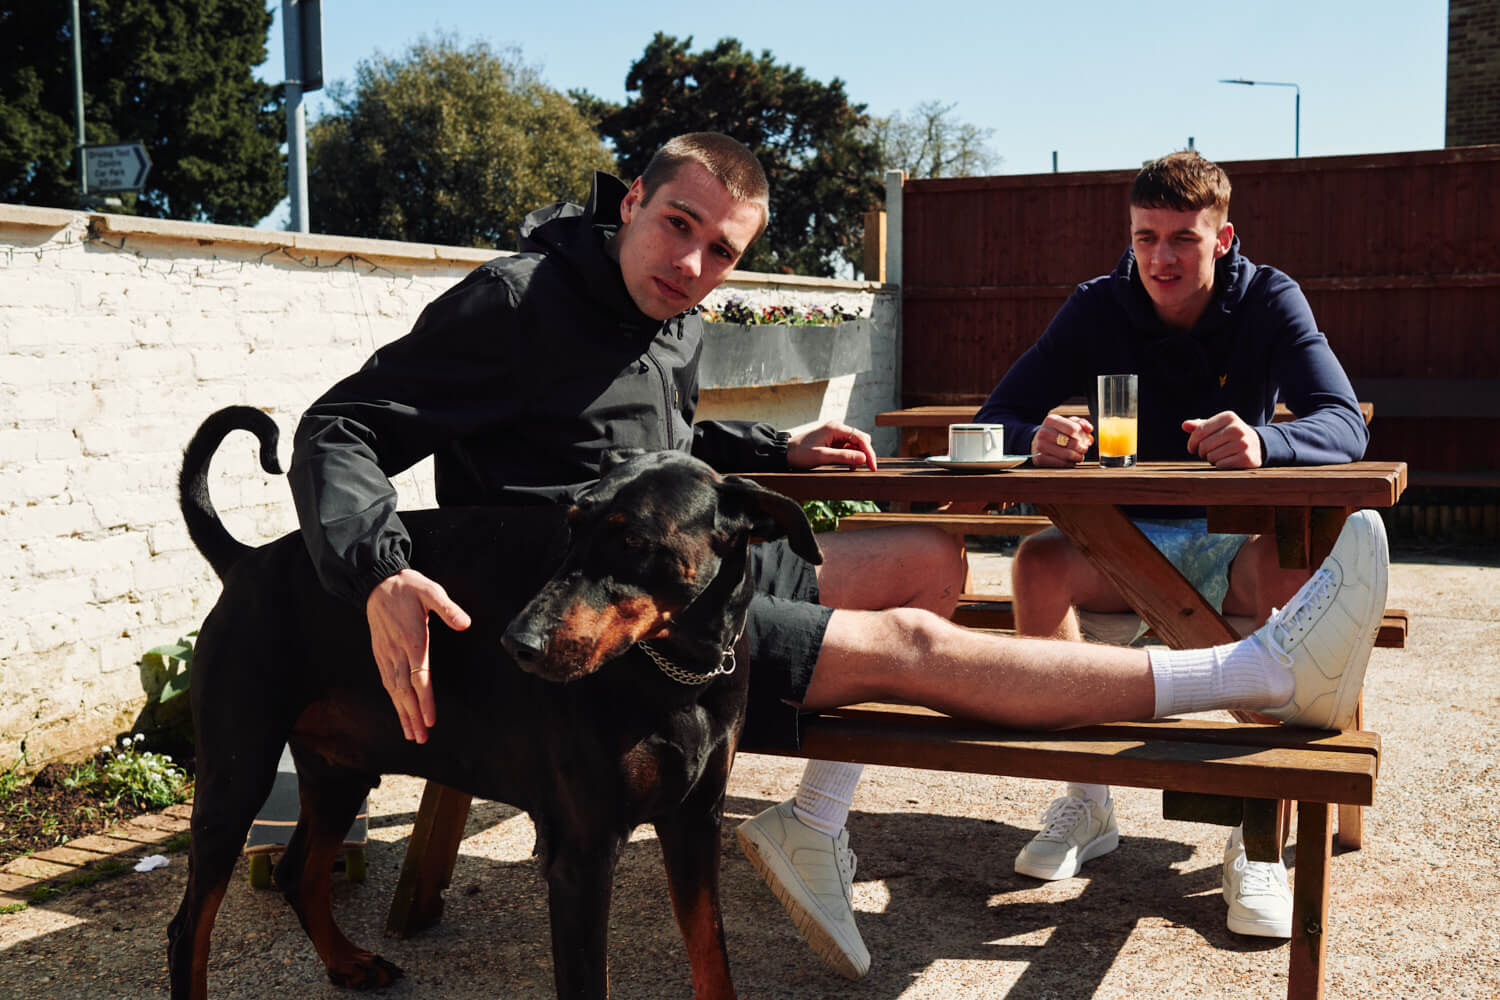 Two lads  in beer garden,  dog by lifestyle photographer Tim Cole